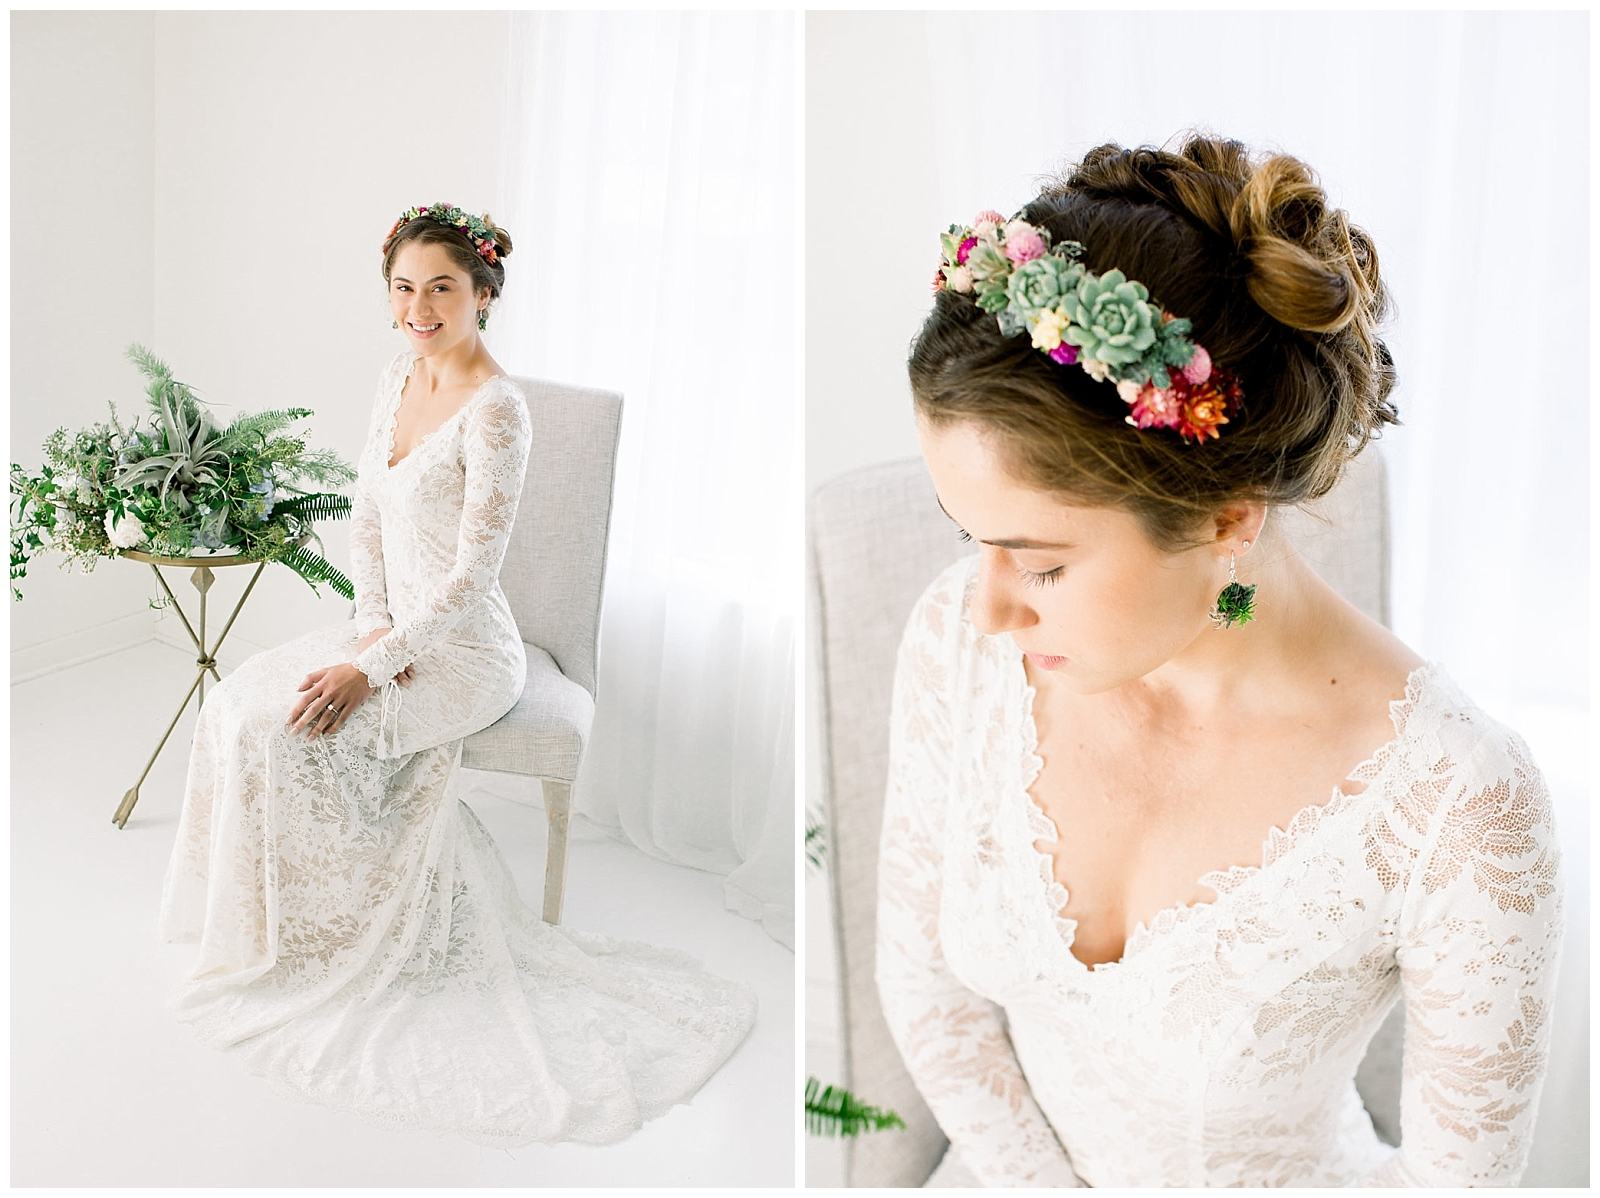 Living-Accessories-styled-shoot-de-joy-photography-epiphany-boutique-headpiece.jpg